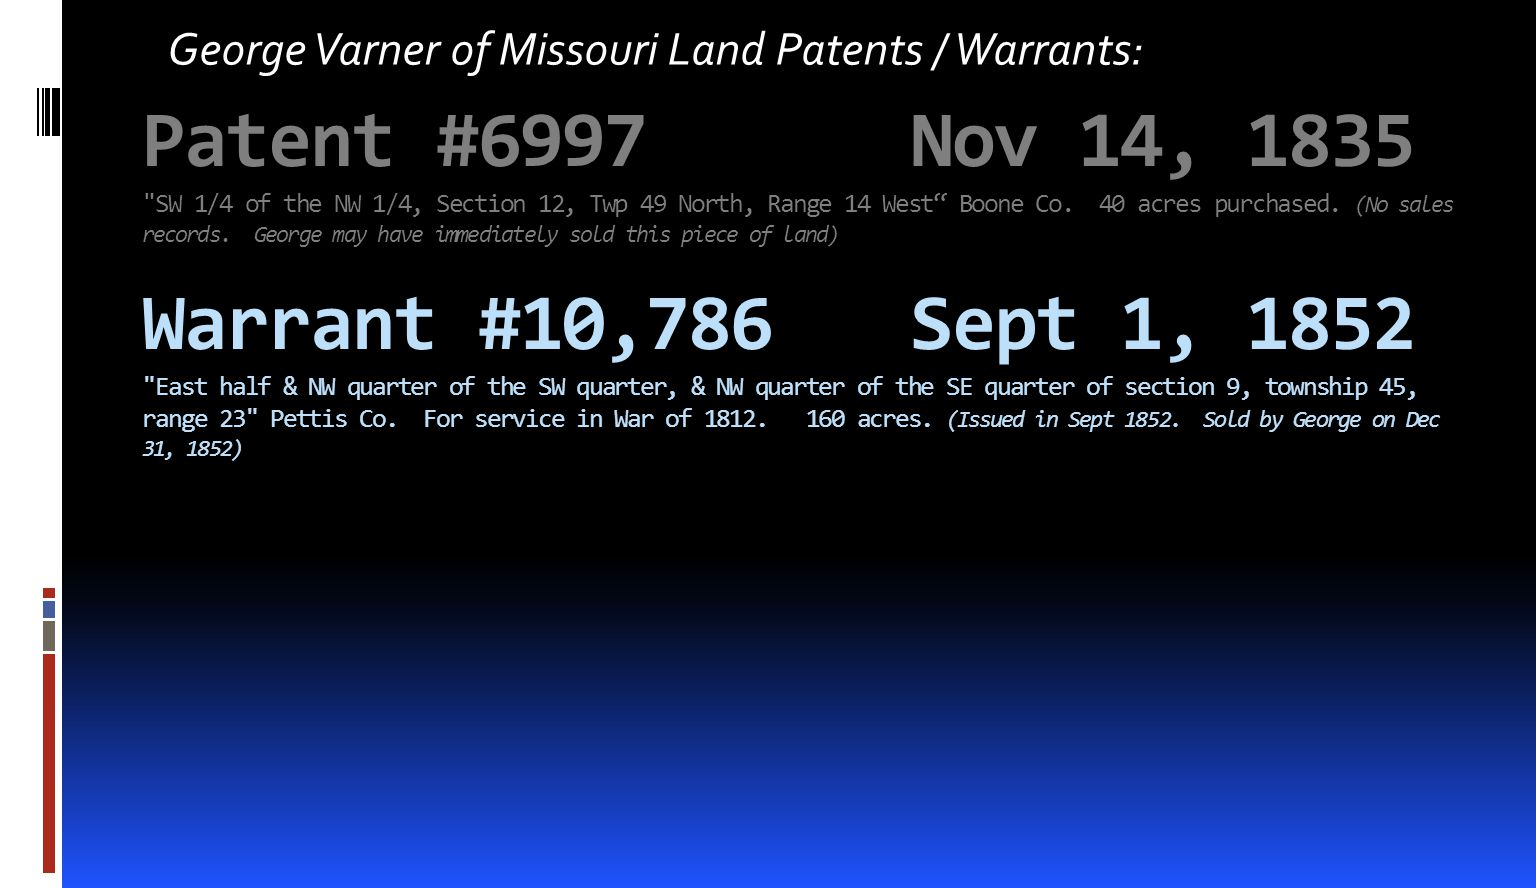 Patent #6997Nov 14, 1835 SW 1/4 of the NW 1/4, Section 12, Twp 49 North, Range 14 West Boone Co.